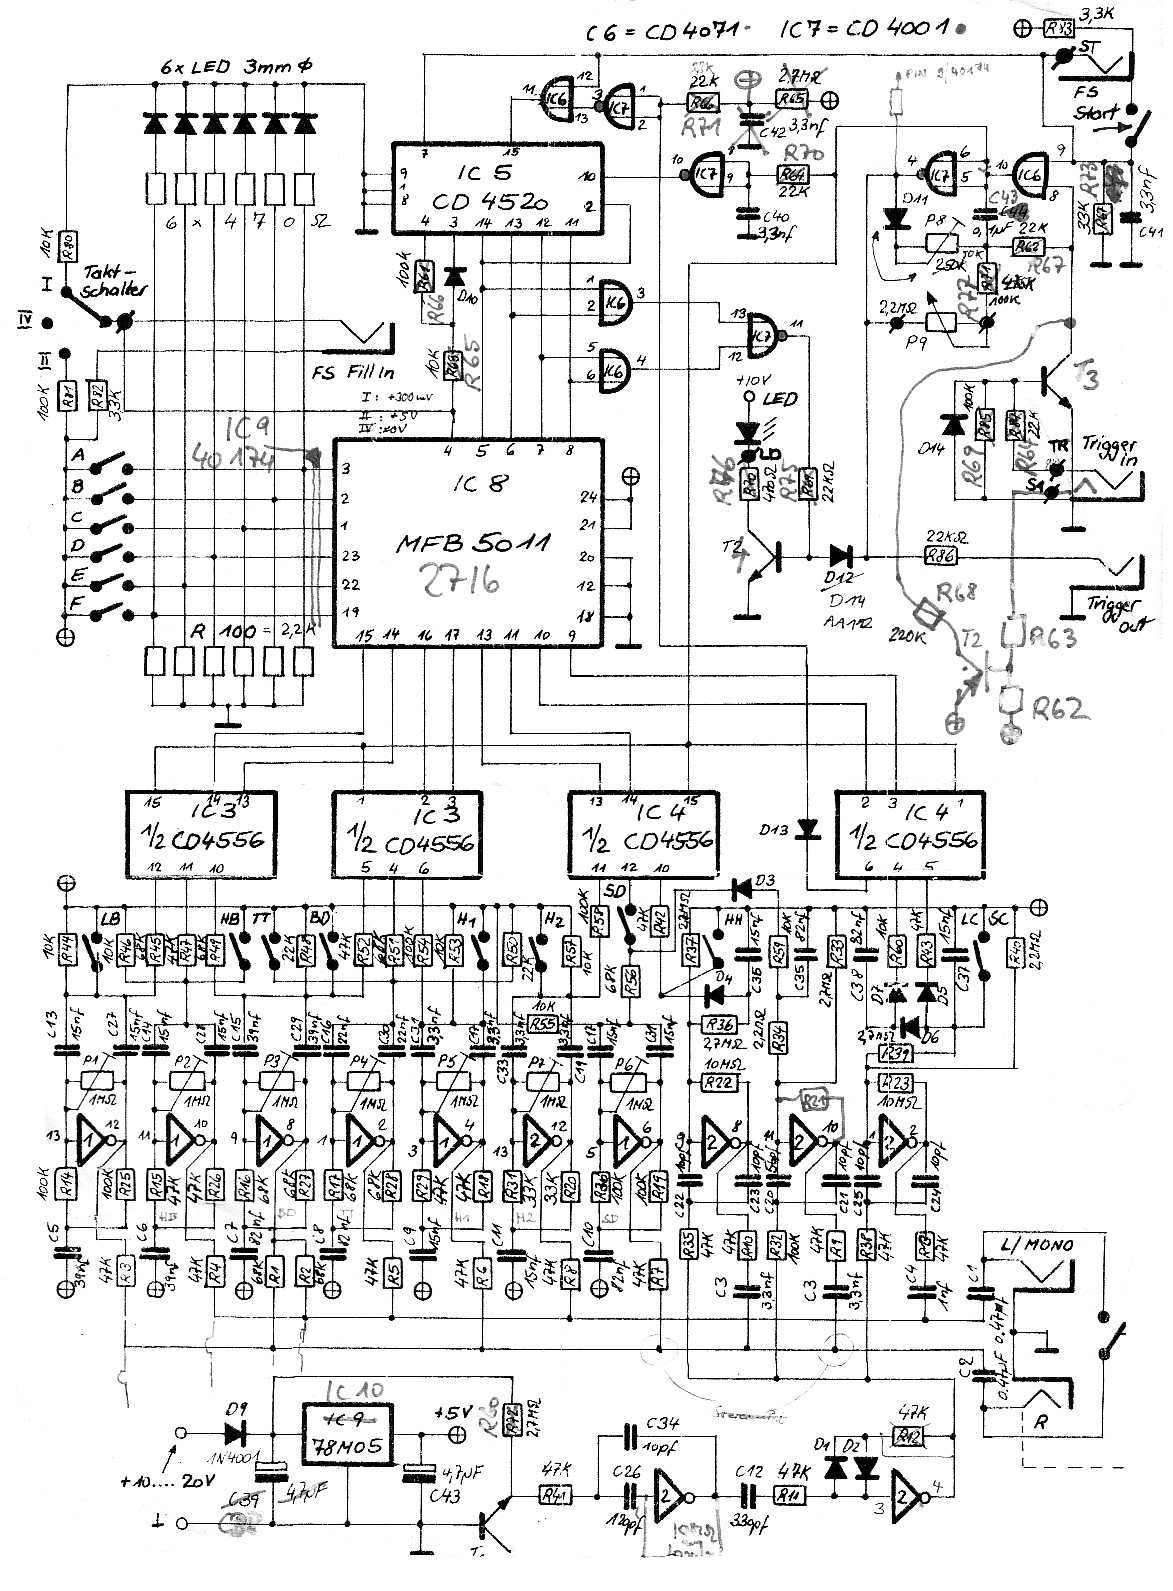 muse wiring diagram wiring diagramsmuse wiring diagram simple wiring diagram easy wiring diagrams muse wiring diagram